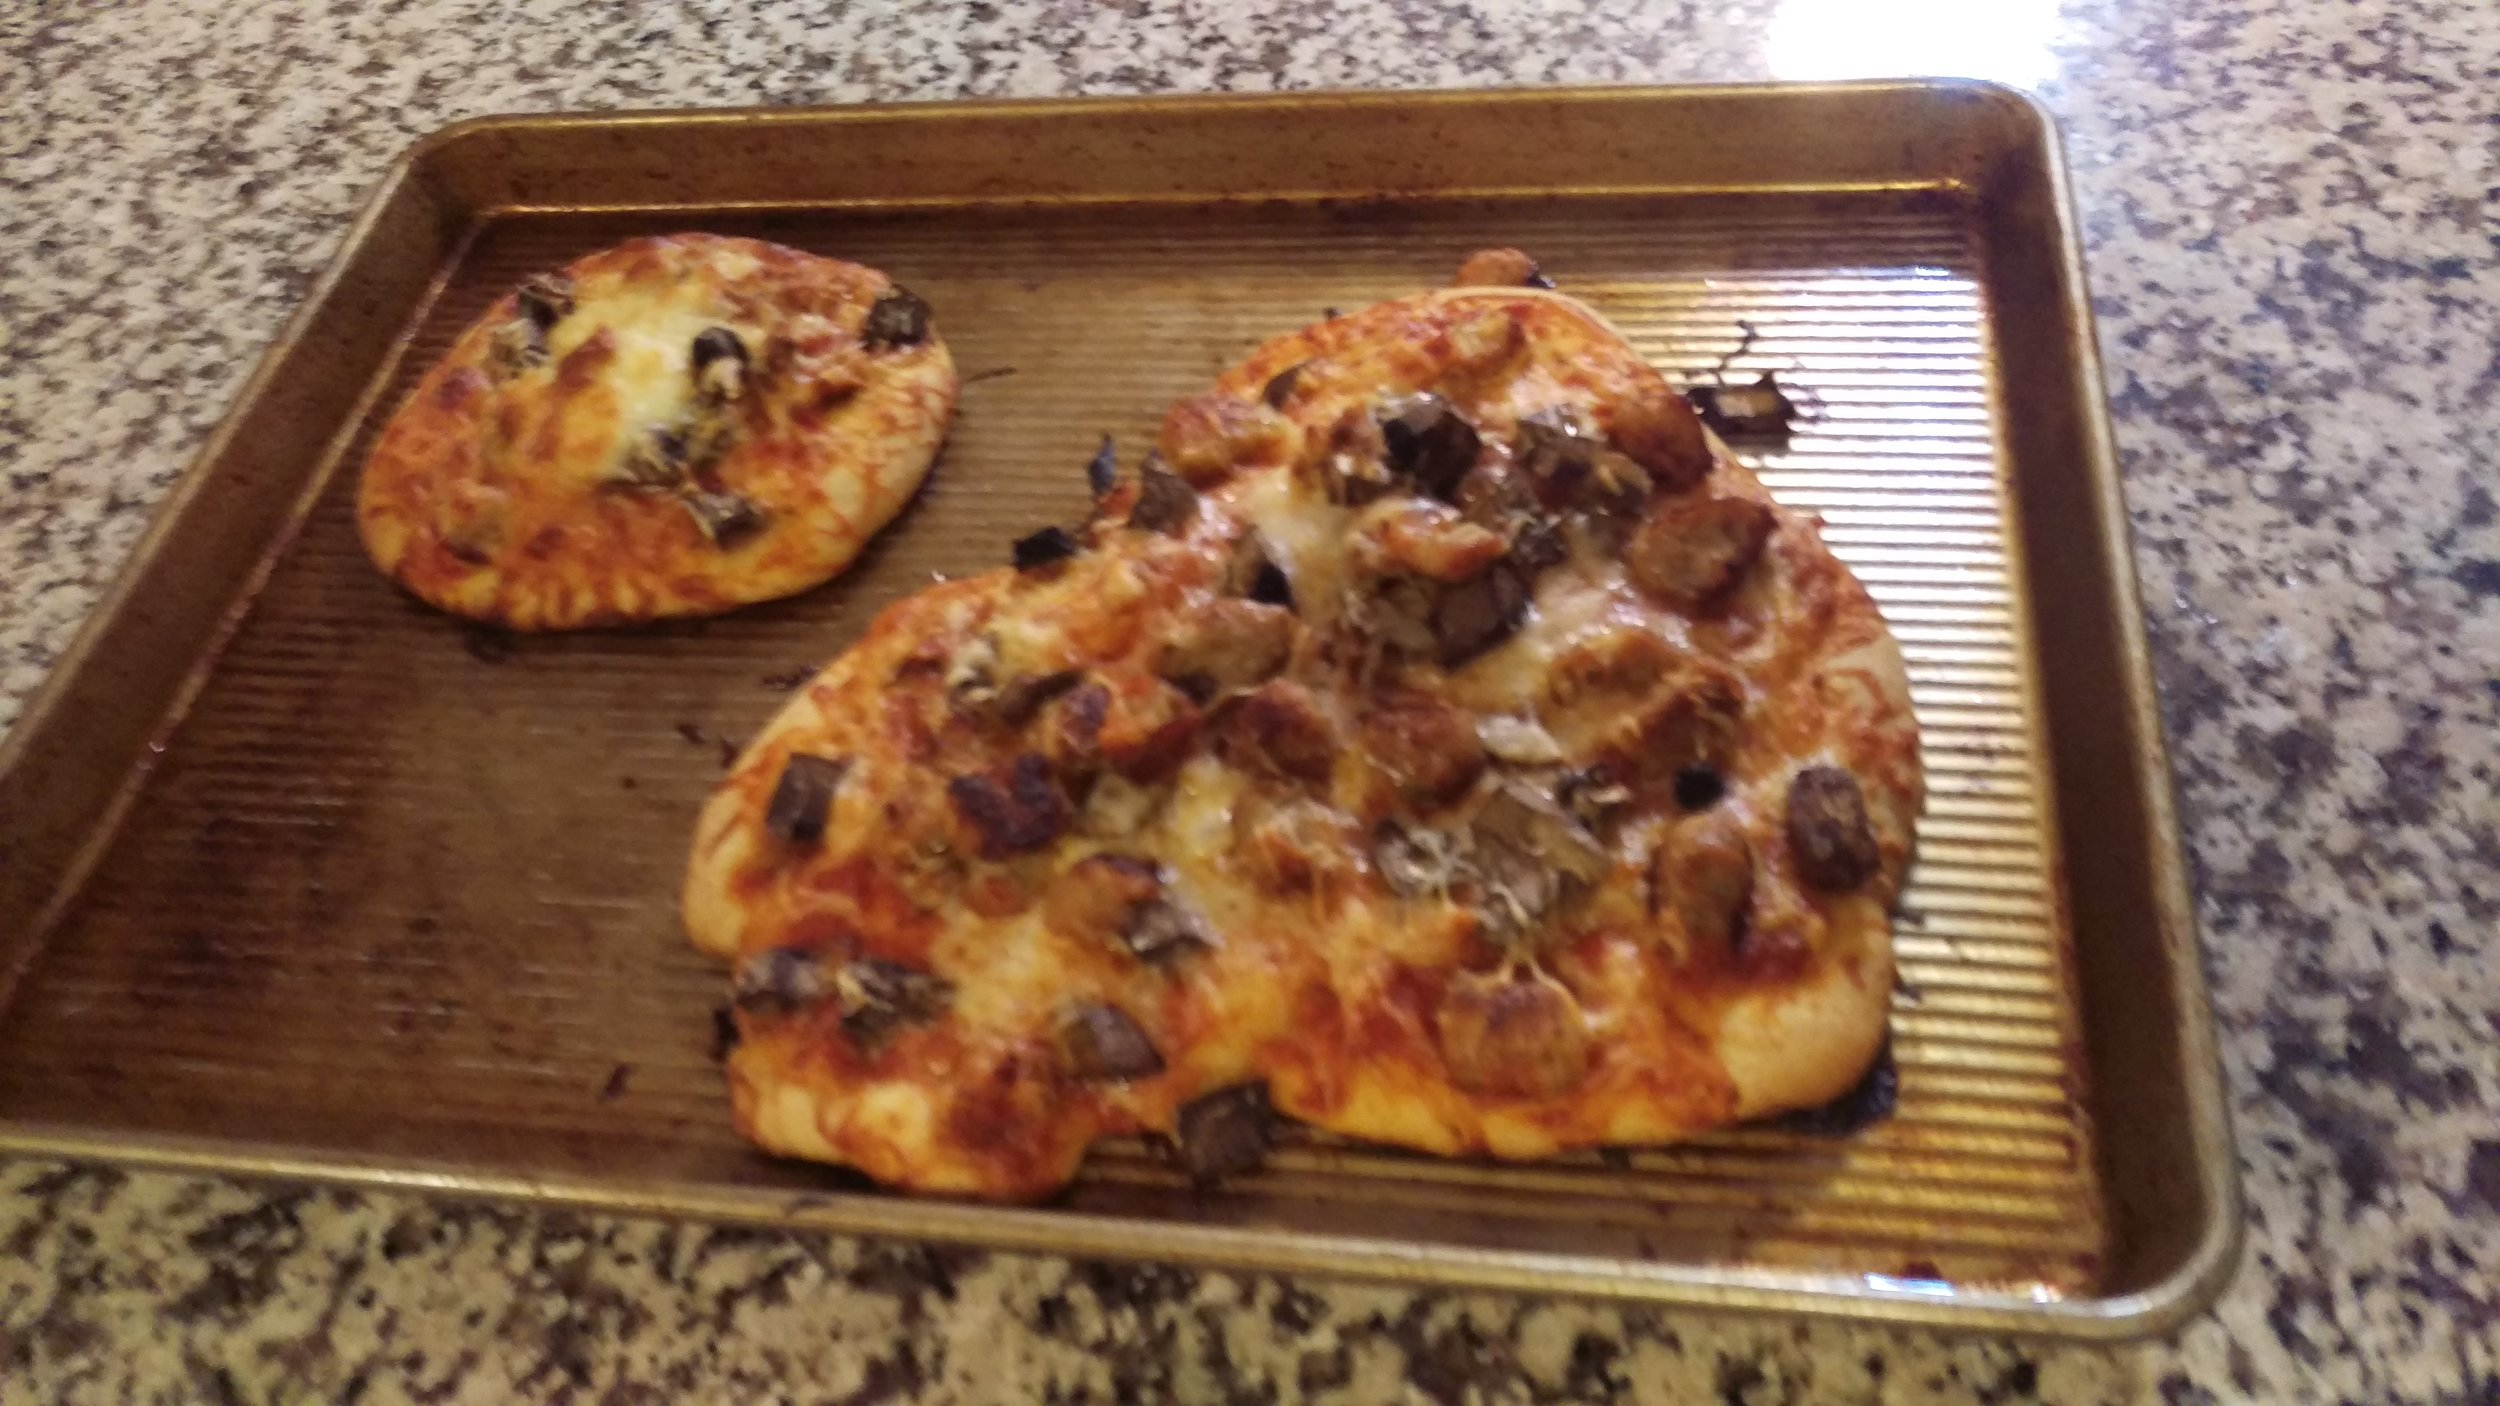 Finished pizzas